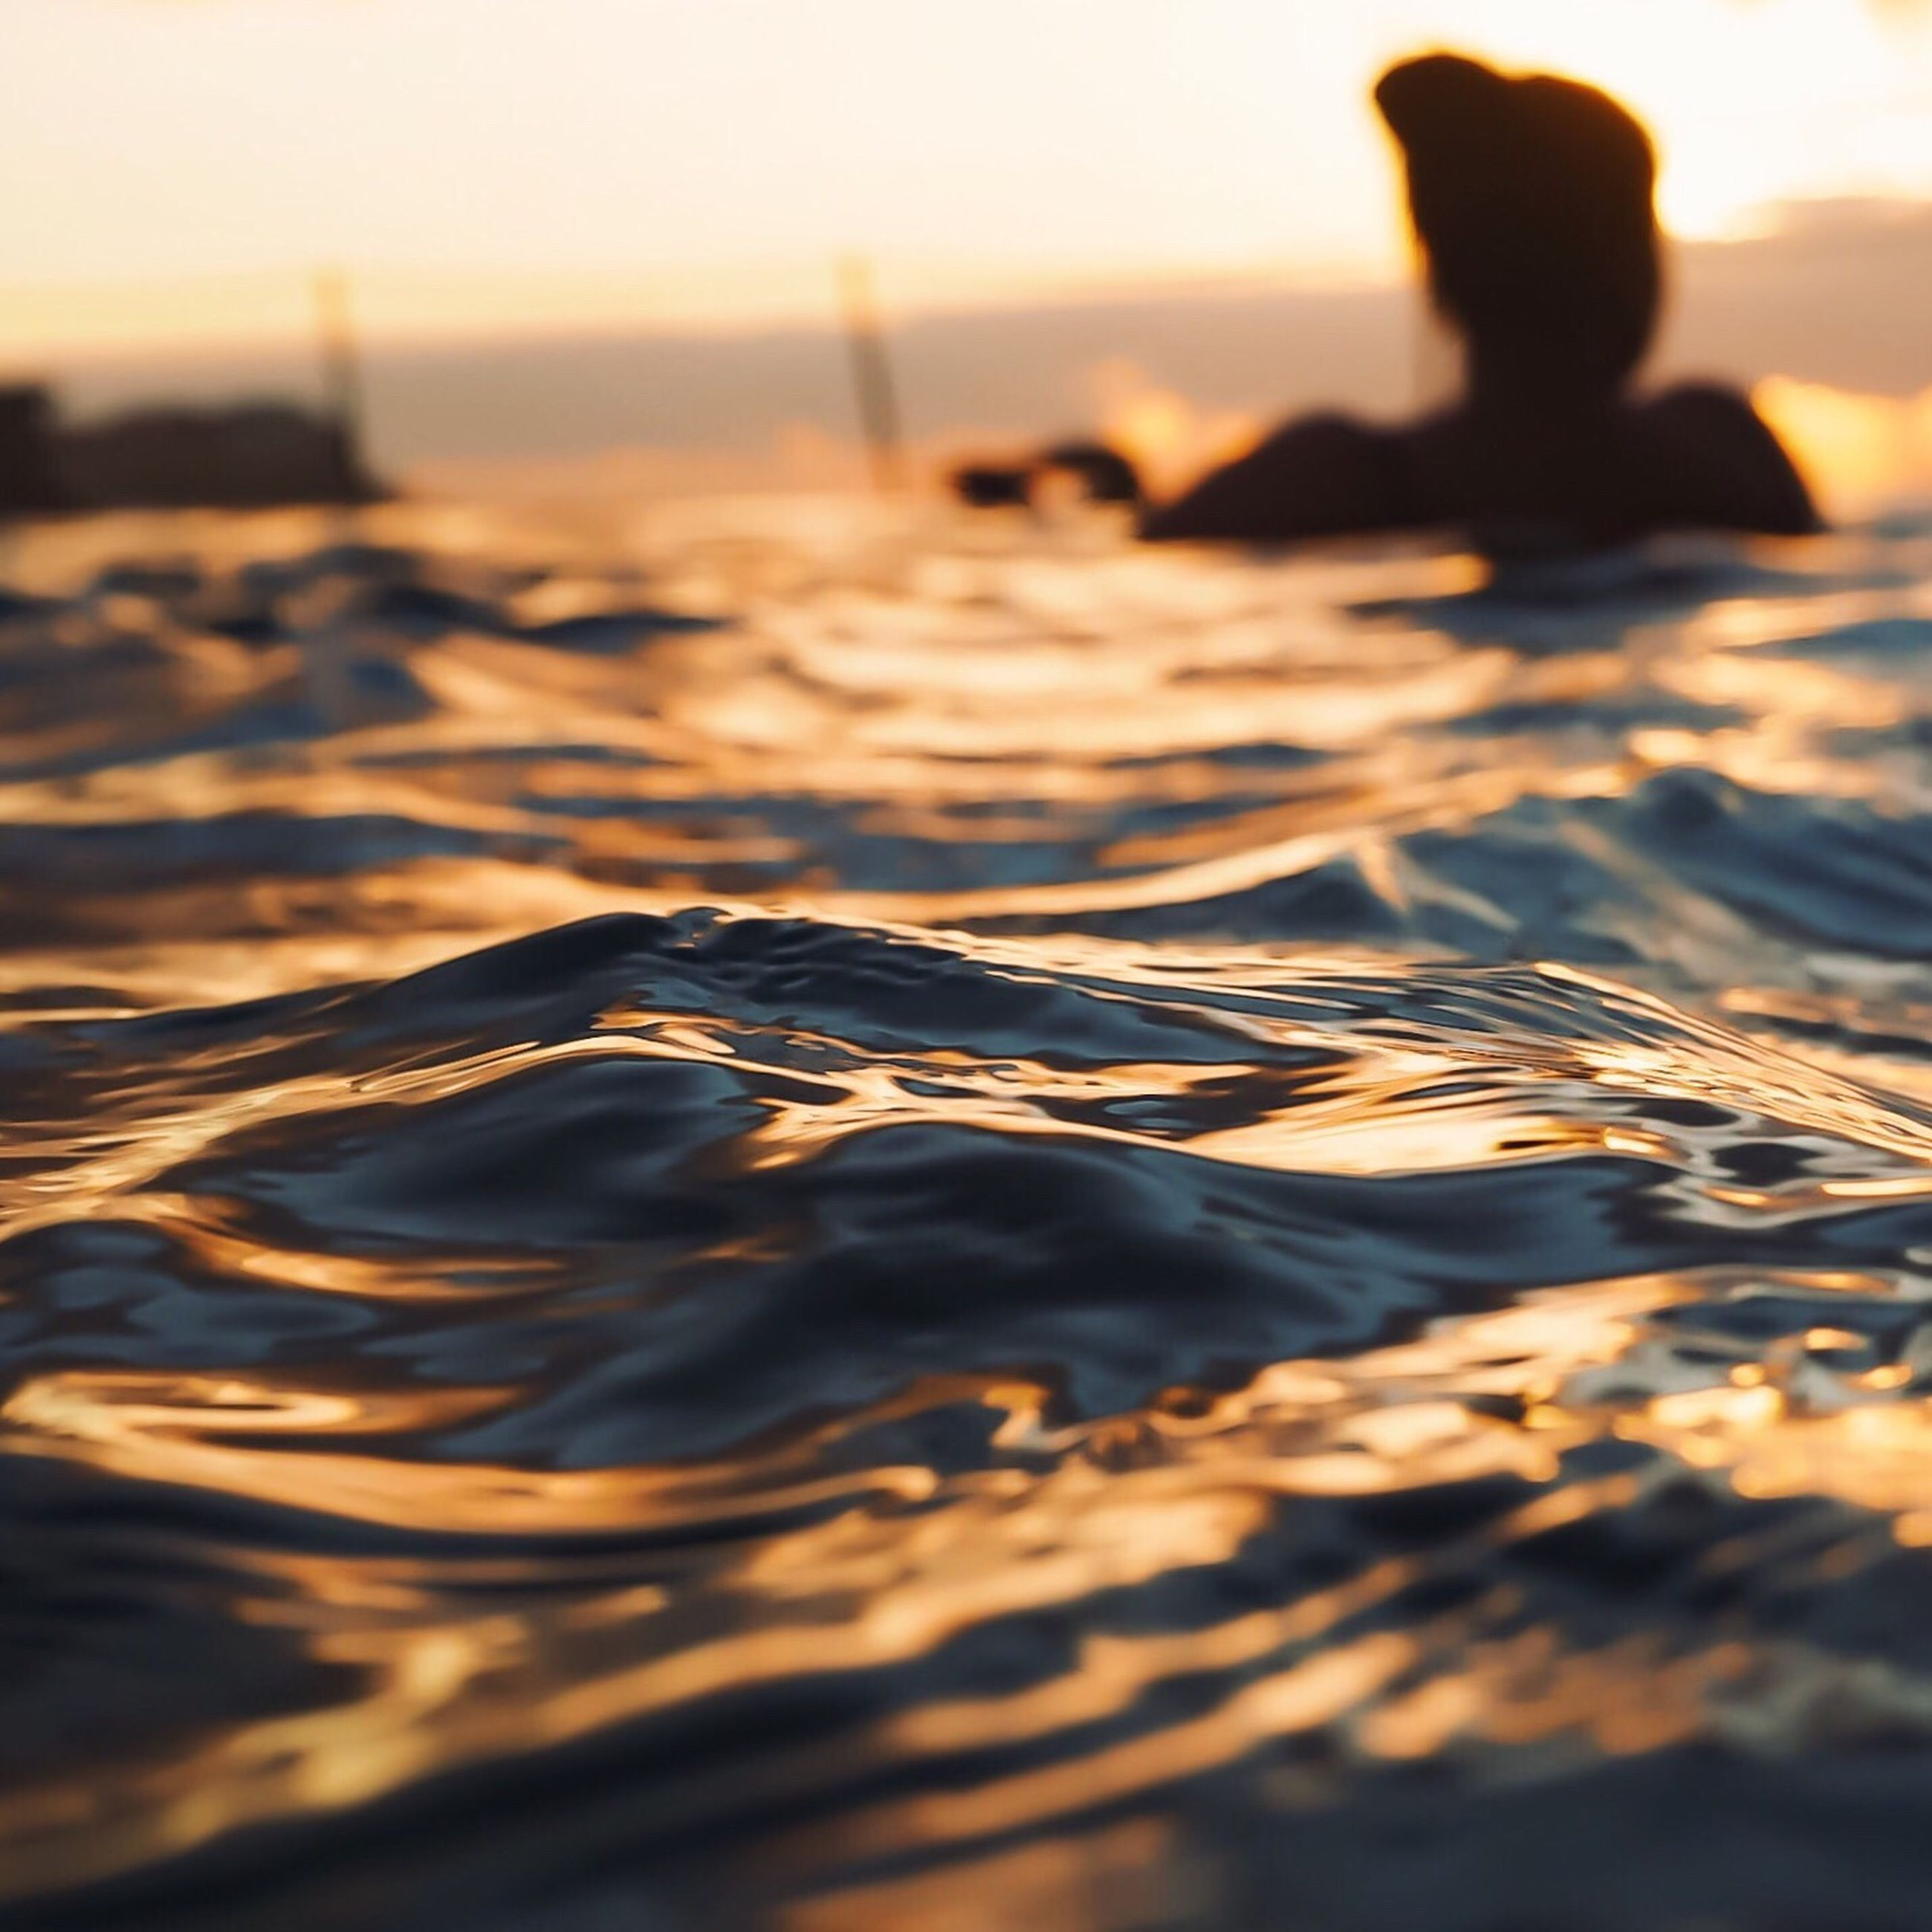 sea, water, waterfront, sunset, rippled, surface level, horizon over water, tranquil scene, tranquility, calm, selective focus, scenics, beauty in nature, nature, sky, outdoors, majestic, sun, shore, ocean, remote, outline